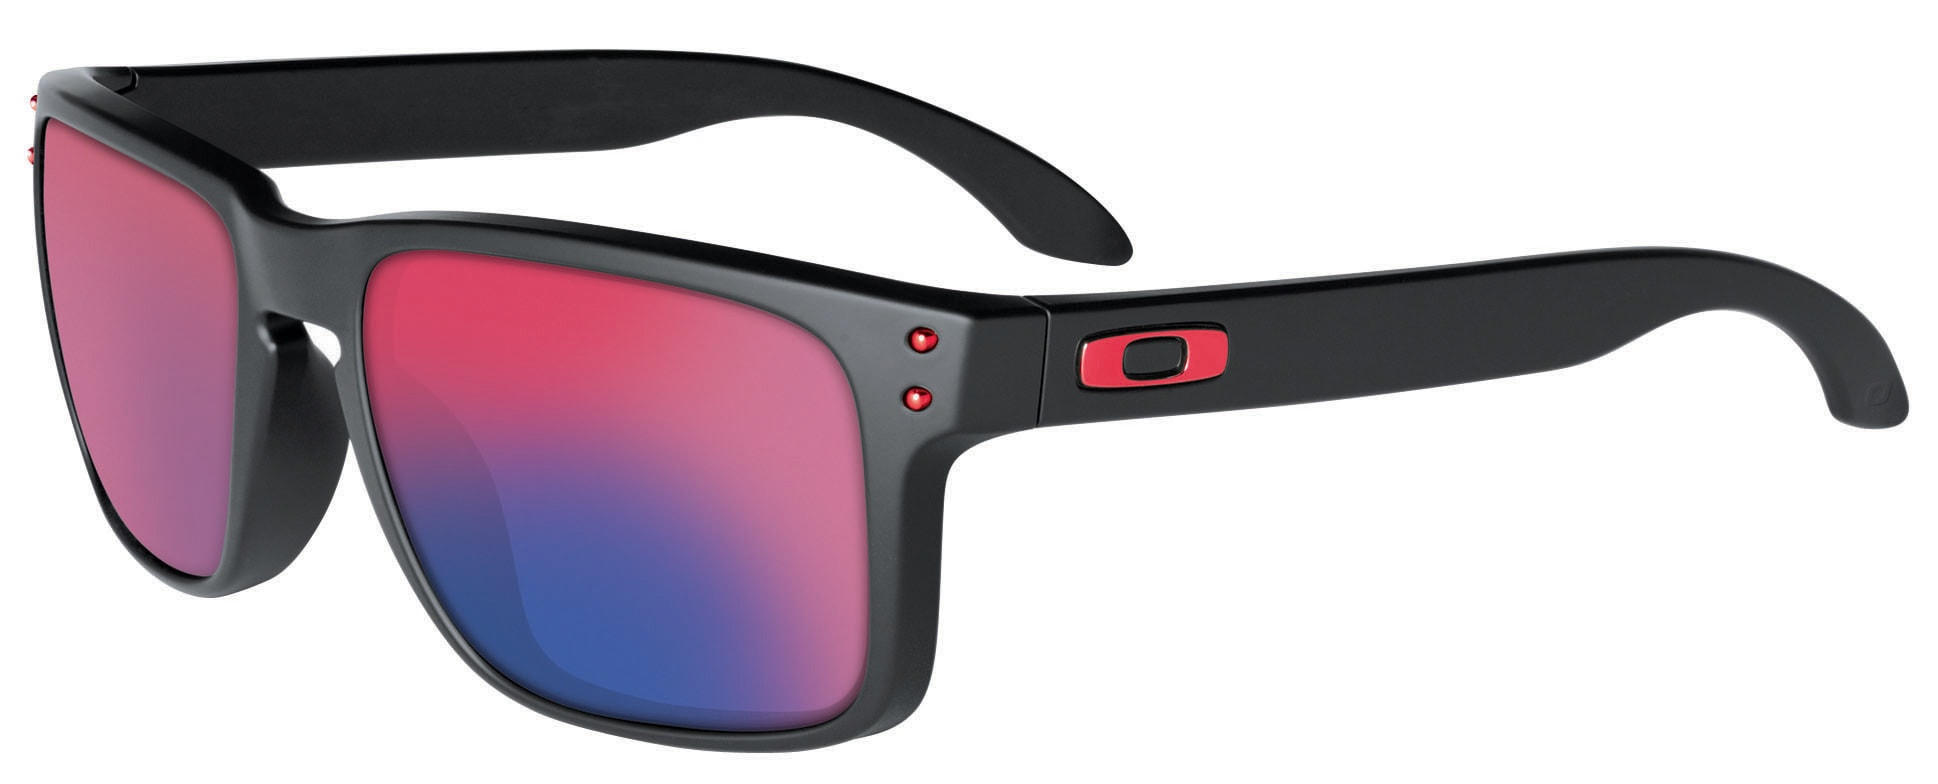 Red And Black Oakley Sunglasses  on oakley holbrook sunglasses